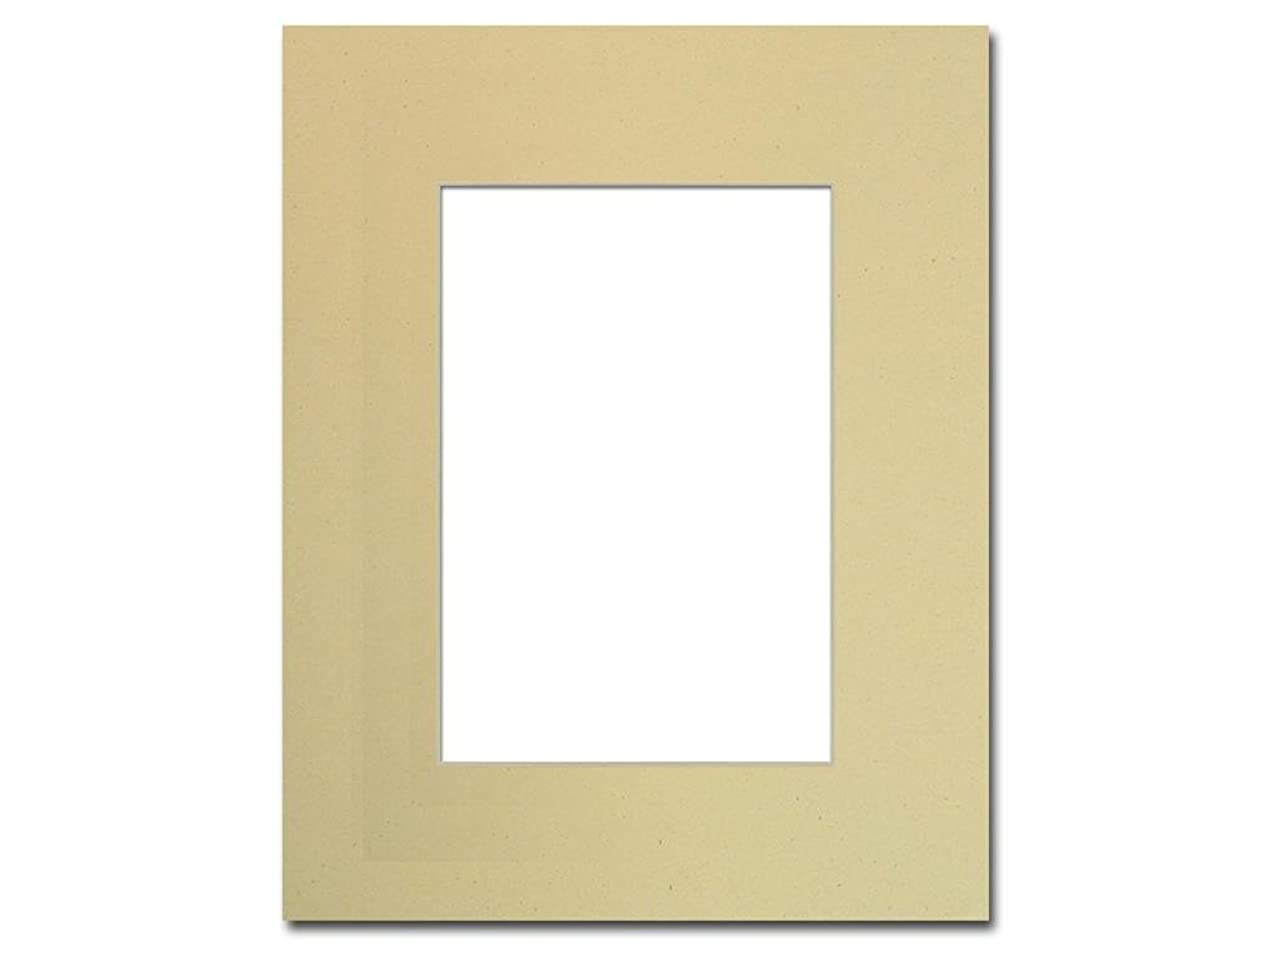 PA Framing, Single Mat, 8 x 10 inches Frame for 5 x 7 inches Photo Art Size - Cream Core/Beach